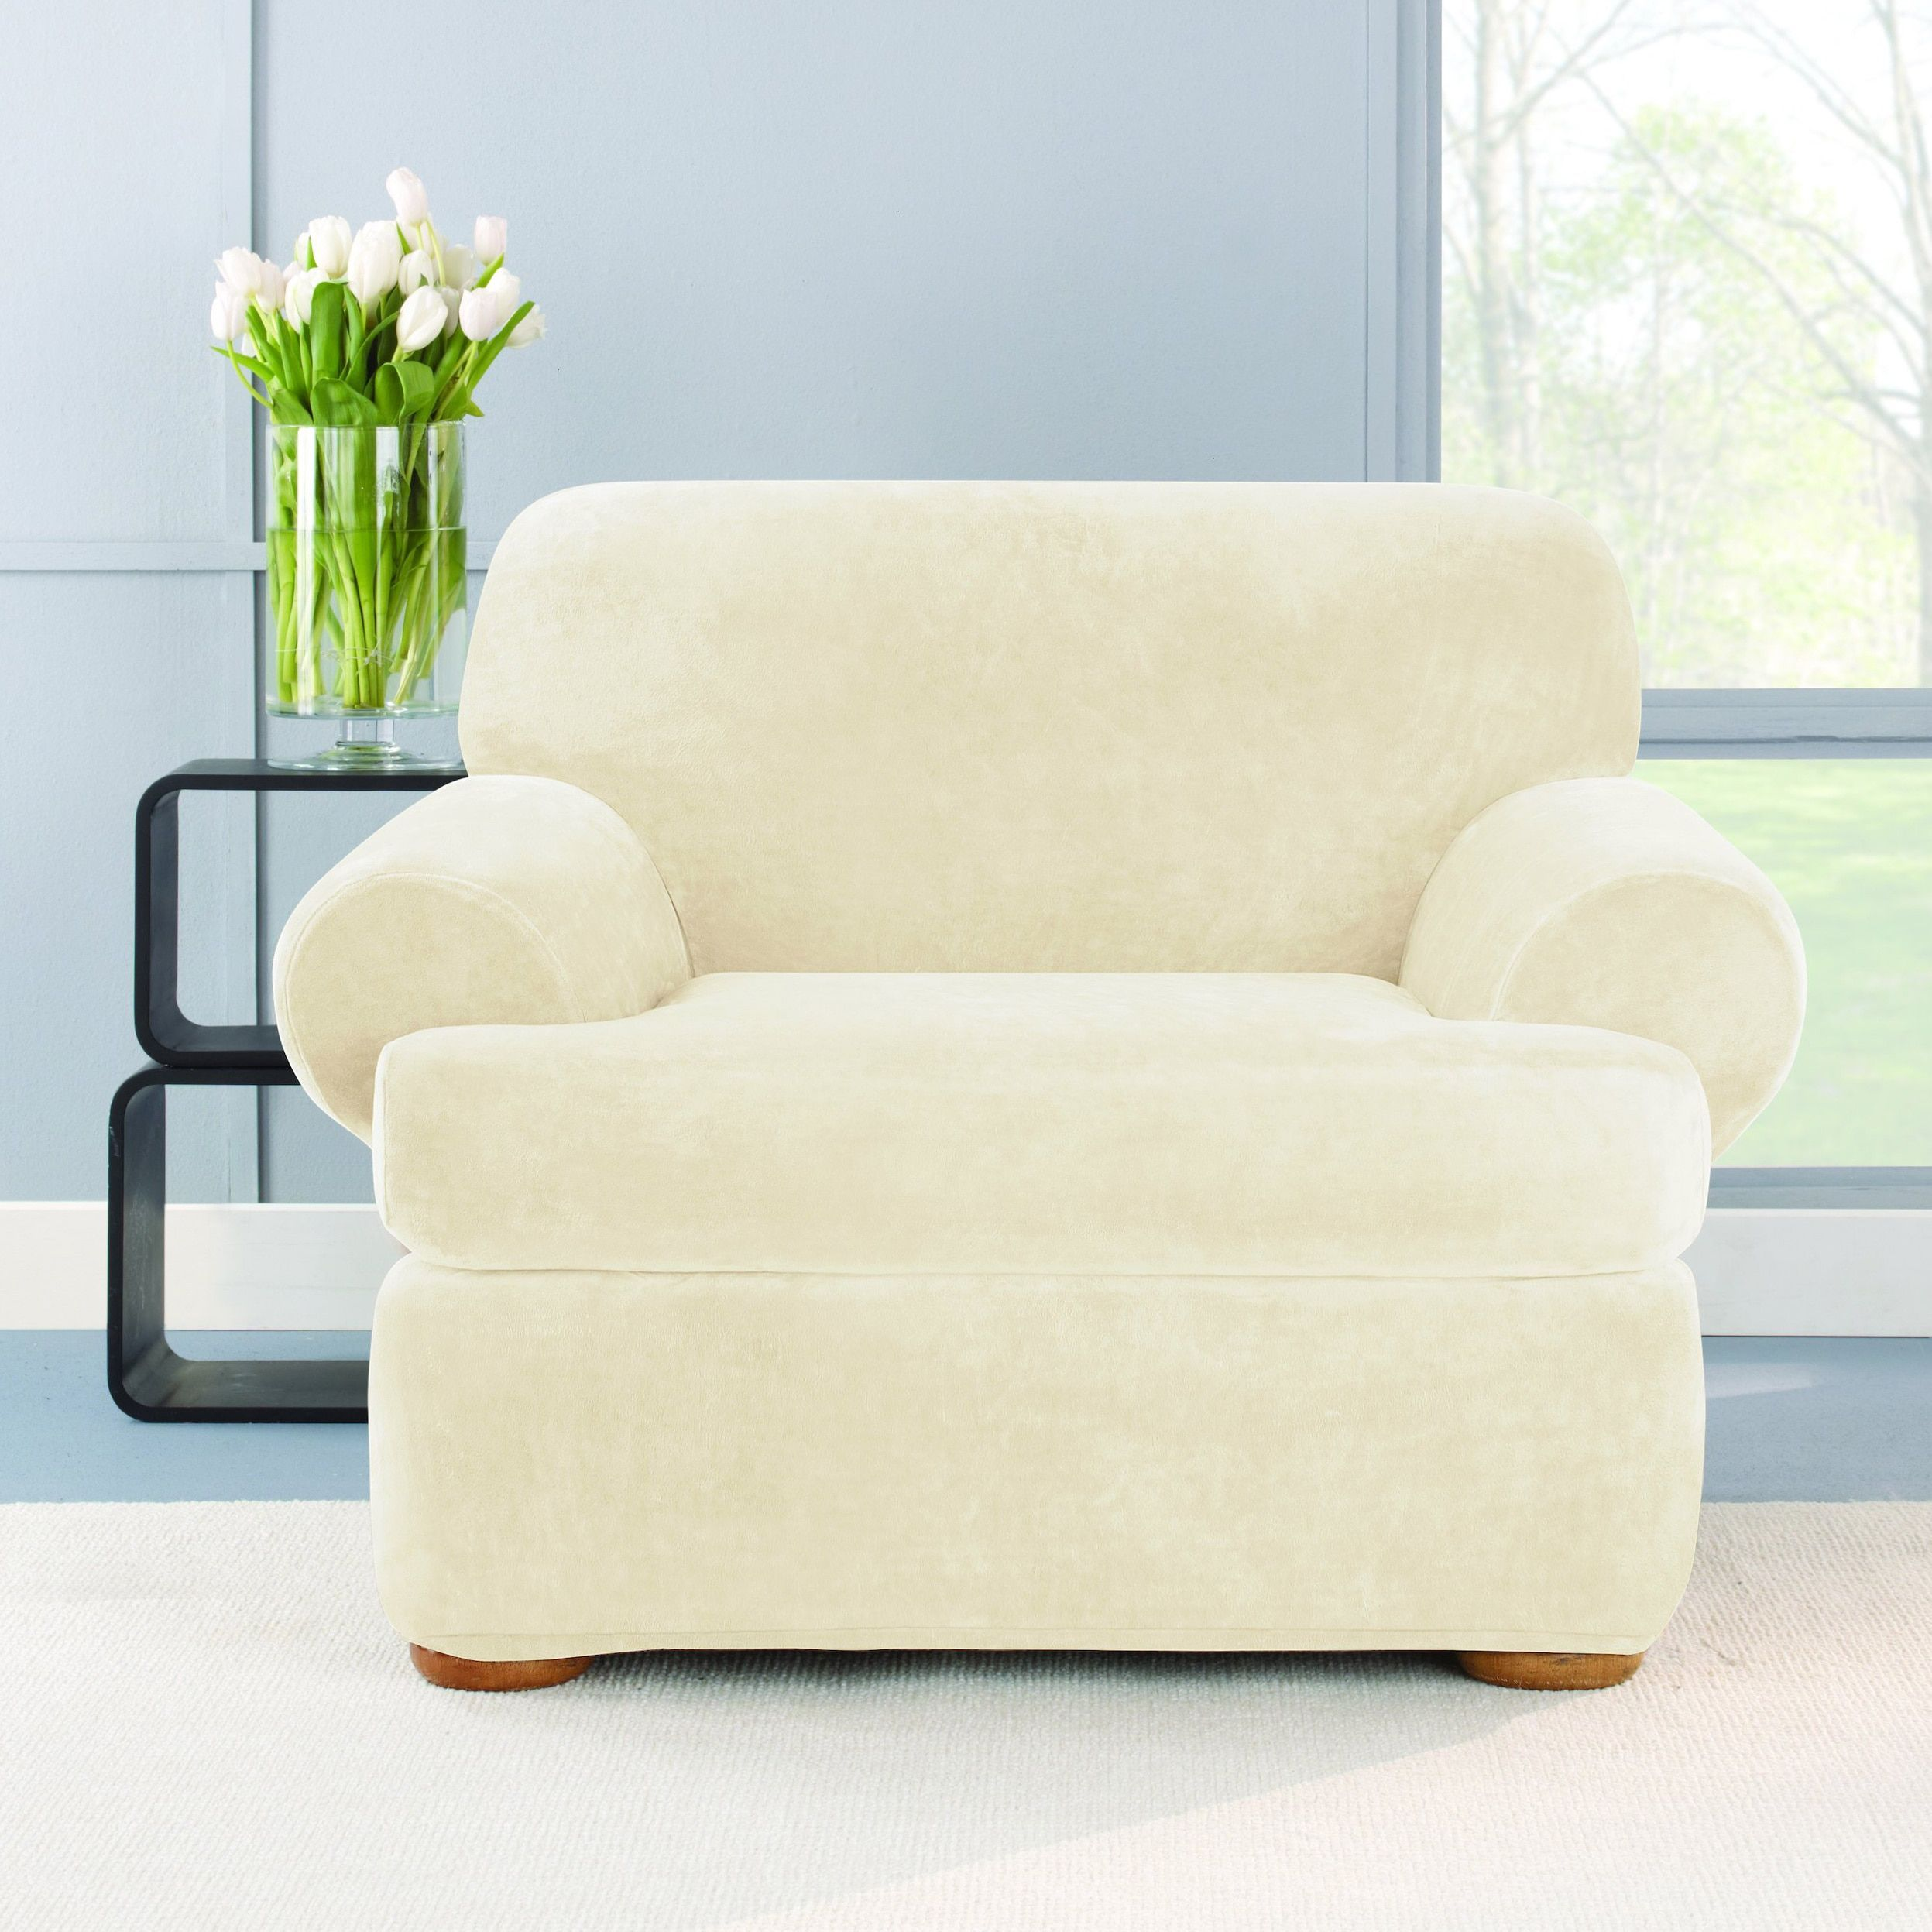 White Chair Slipcover T Cushion Upholstered Slipper Sure Fit Stretch Plush Cream Beige Off Solid